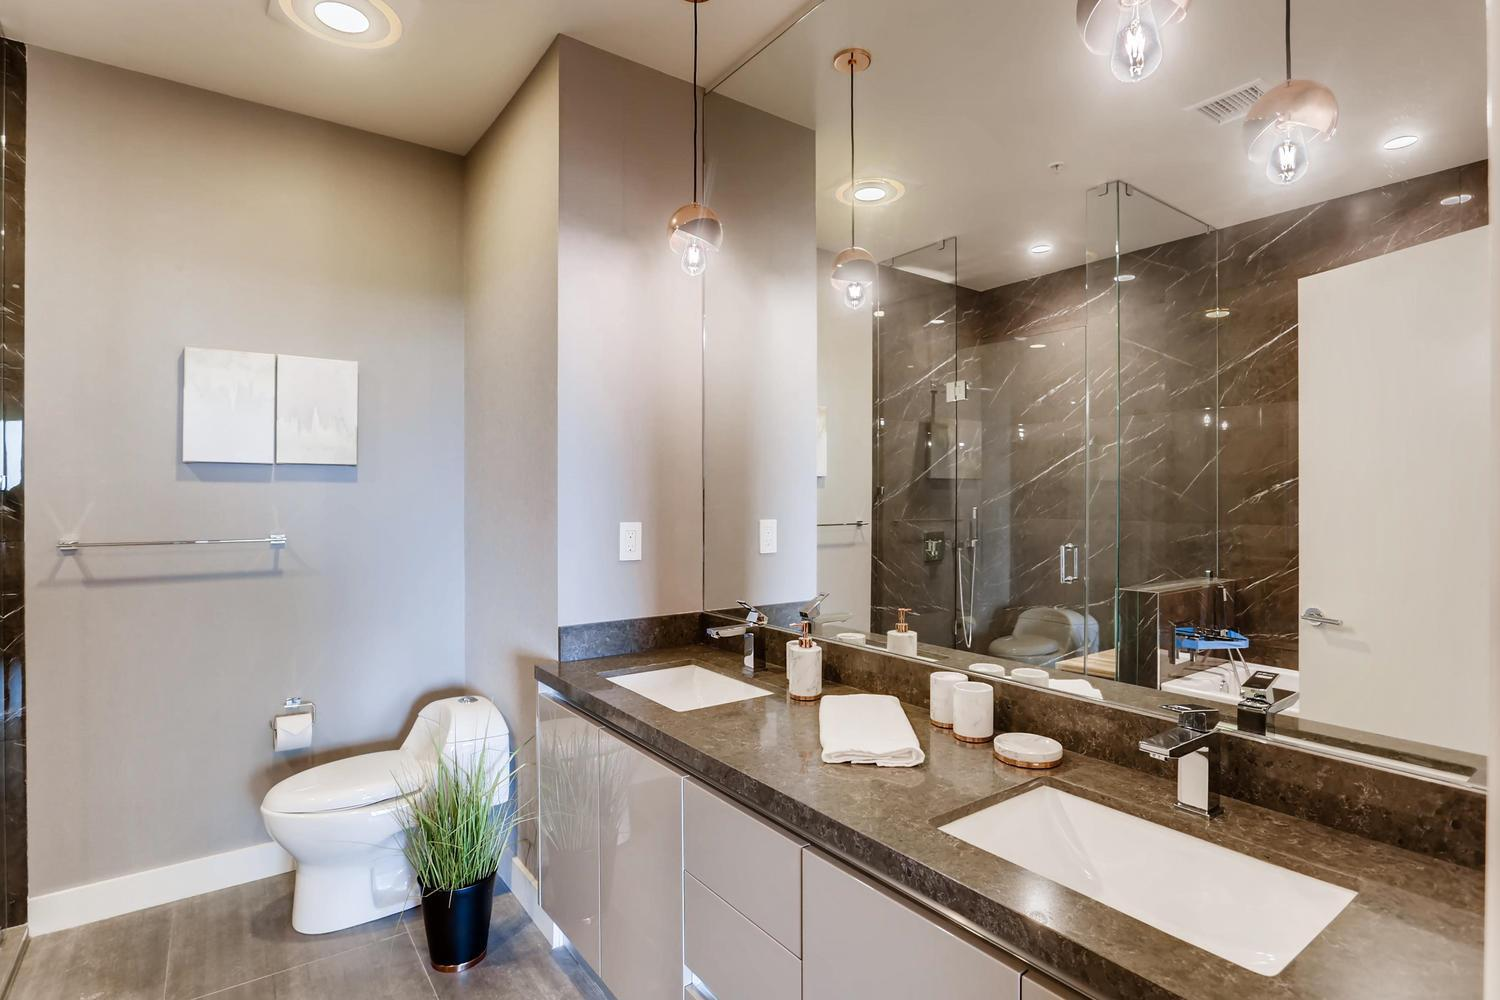 Bathroom featured in the Plan E By Adept Urban  in Los Angeles, CA